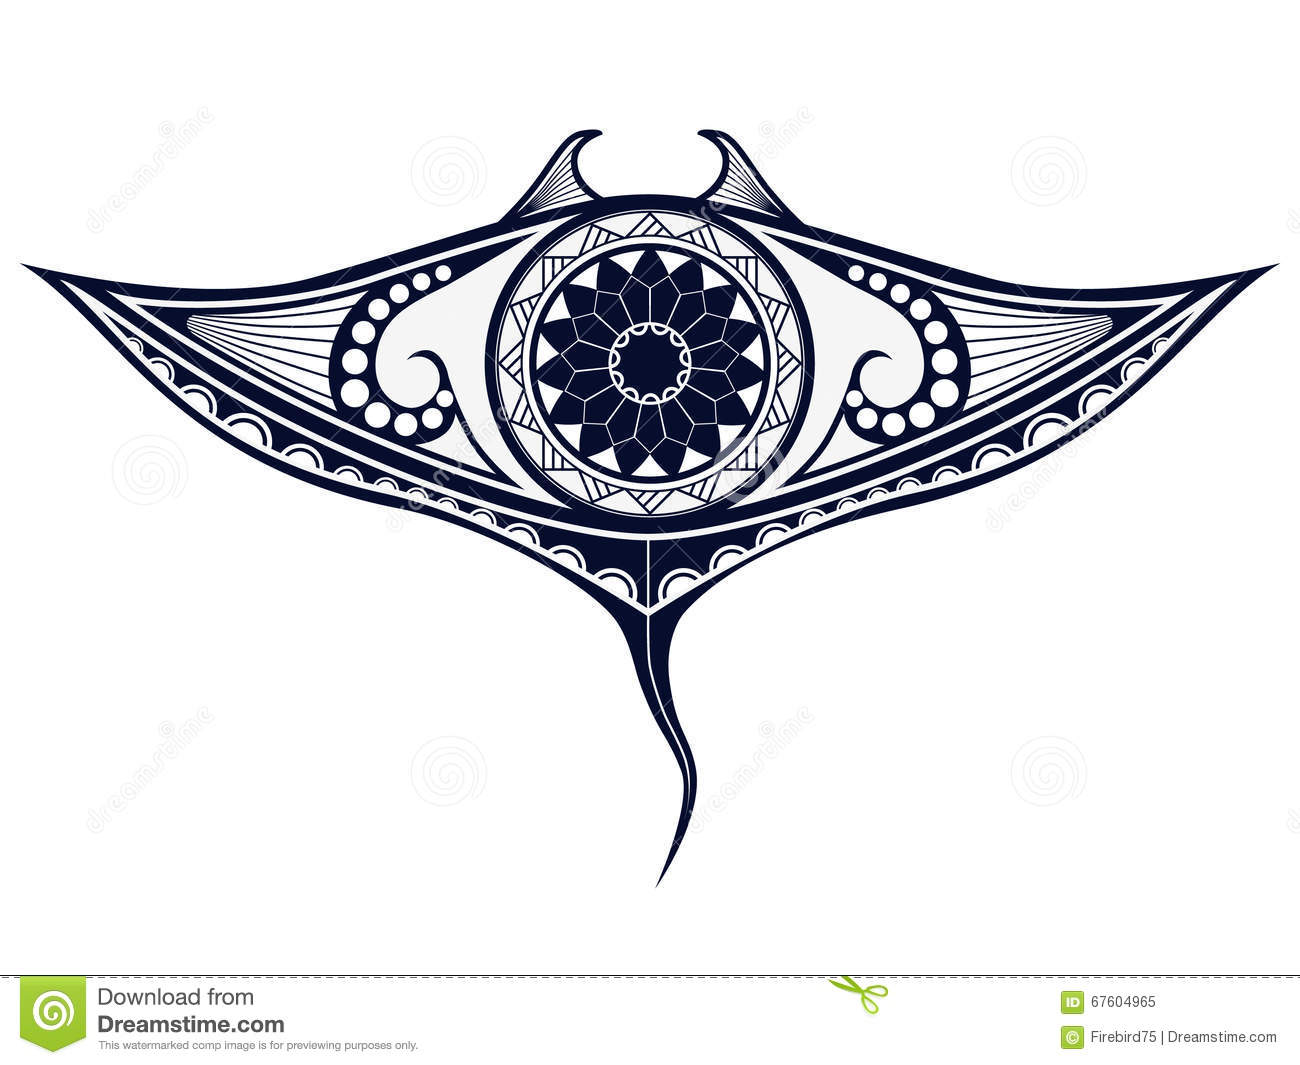 Polynesian Patterns And Designs Stingray